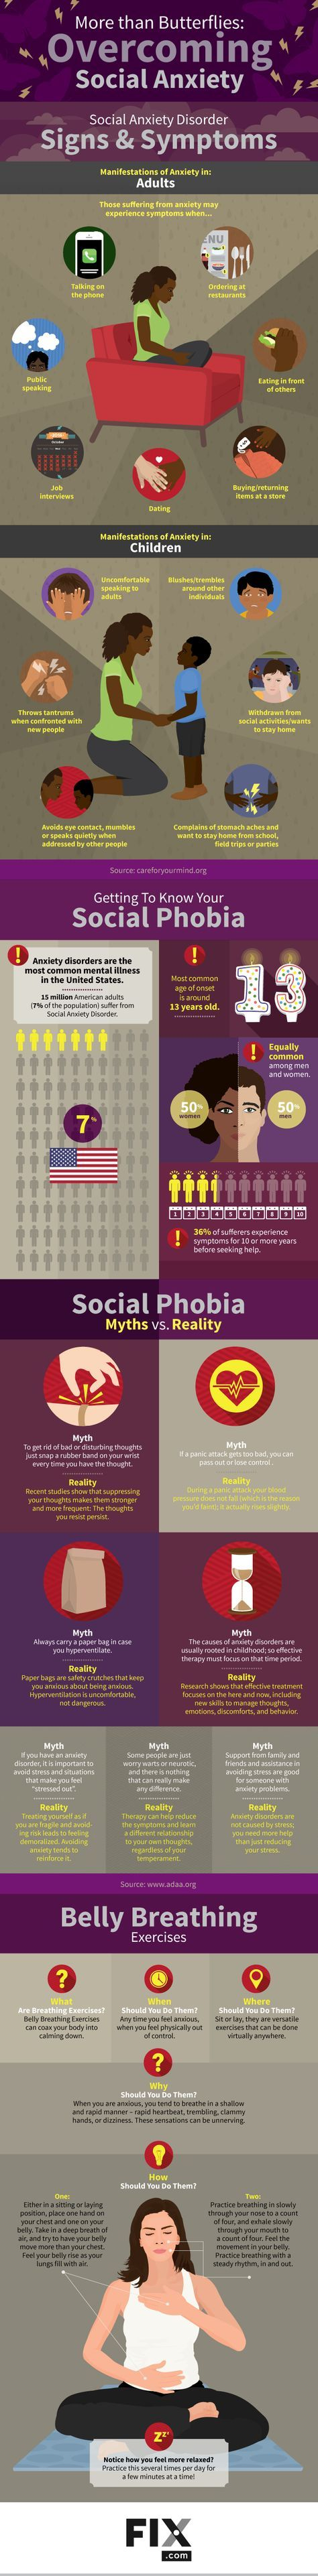 Social Anxiety Disorder is serious, real, and very treatable. End the stigma and get to know the difference between fact vs fiction!